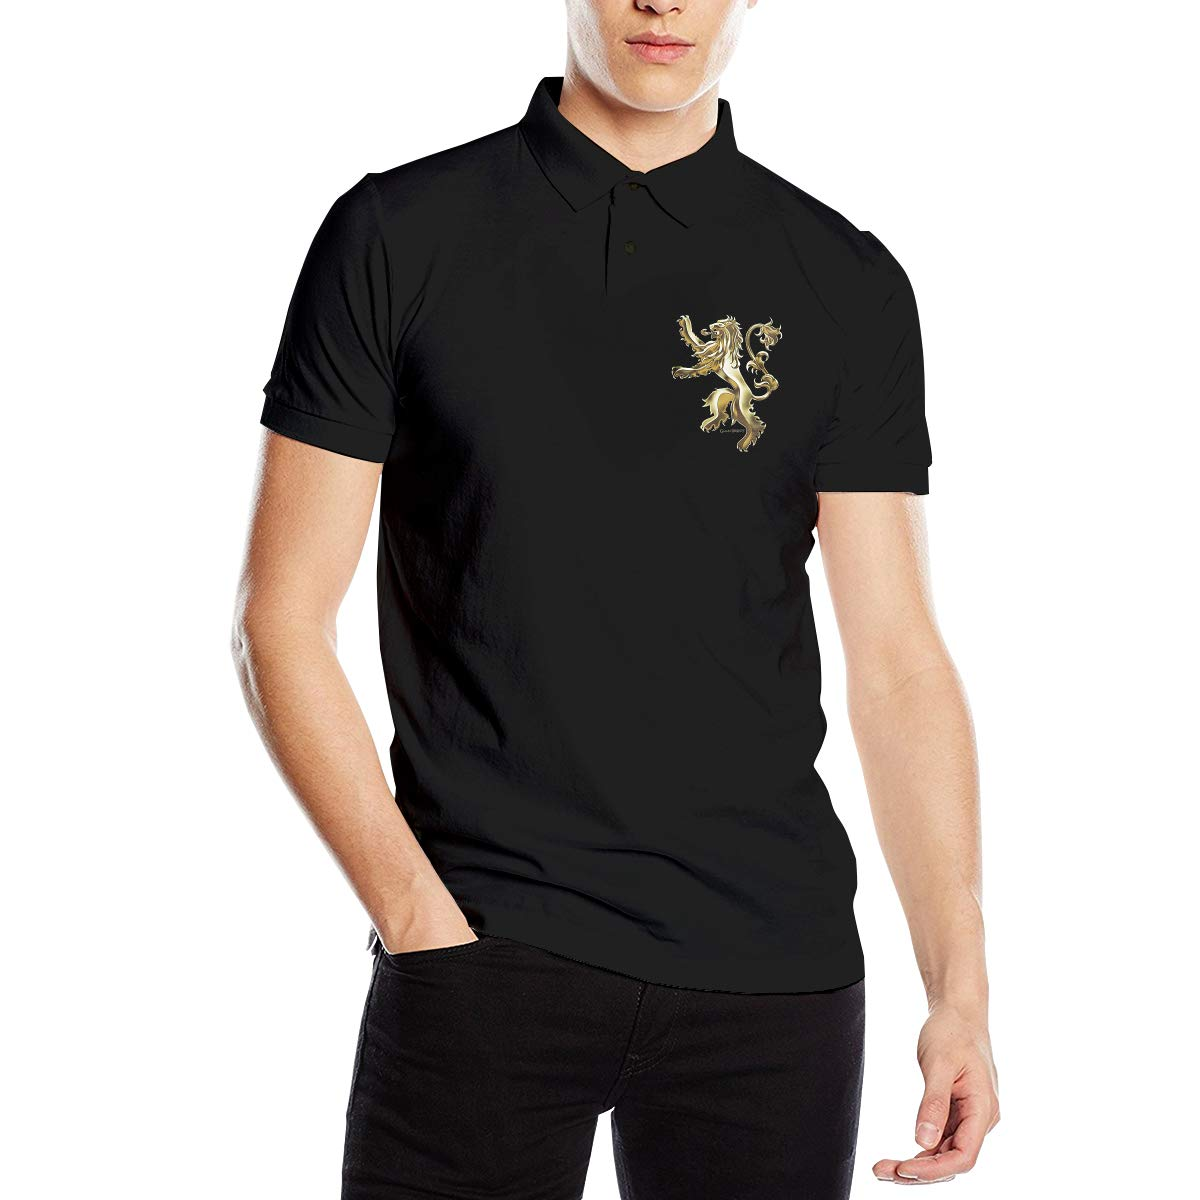 CharmKAT Mens Game of Thrones Lannister Cotton Casual Polo Shirt Personalized T-Shirt Black